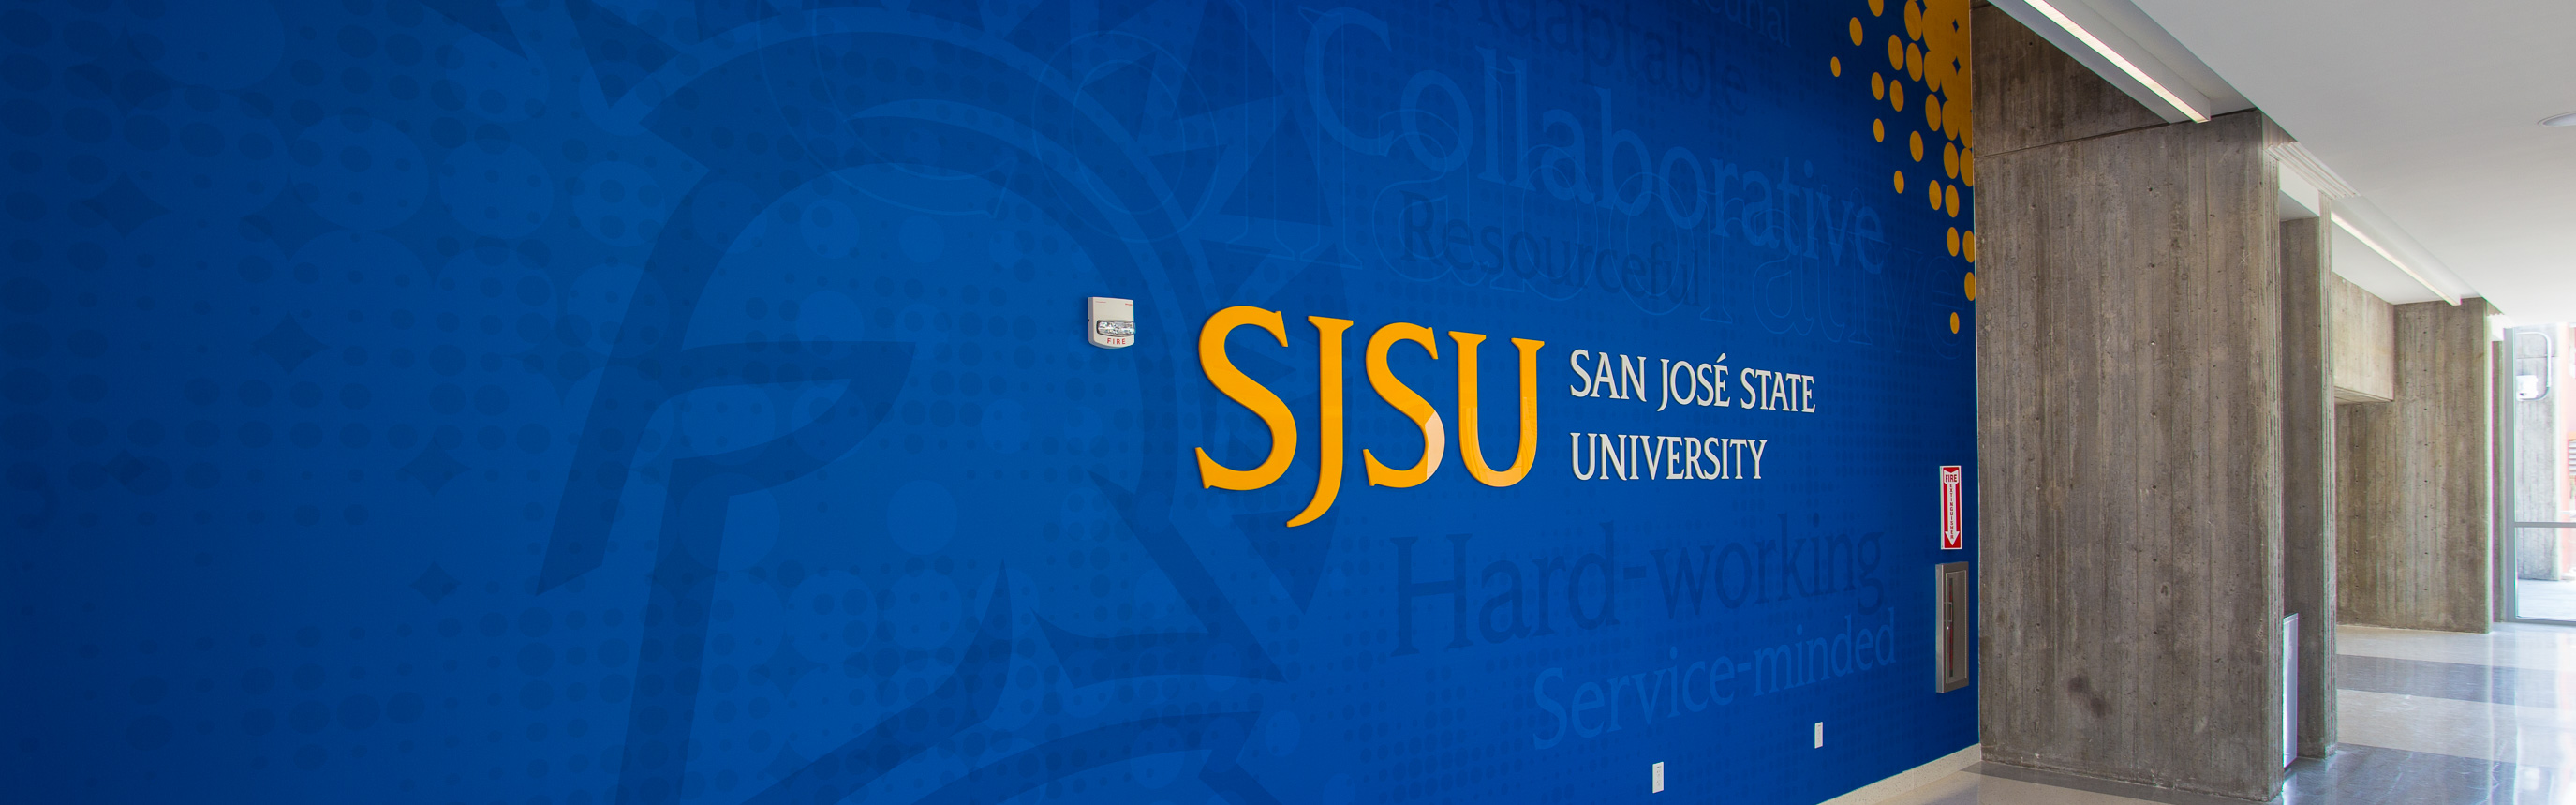 Brand Design & Environmental Graphics SJSU